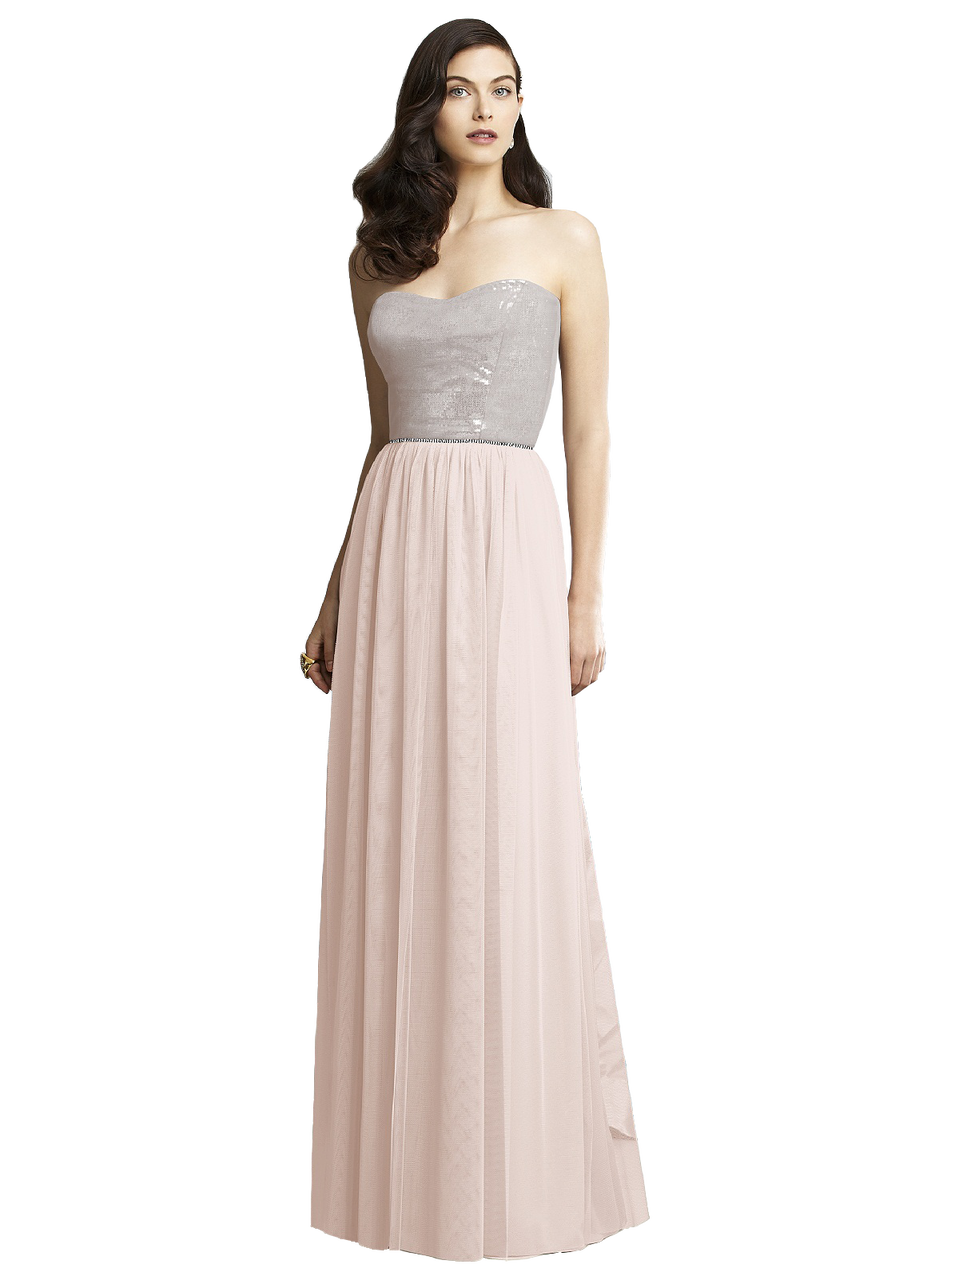 Bridal shop london dessy boa boutique please contact us to make a bridesmaid appointment to view styles ombrellifo Image collections